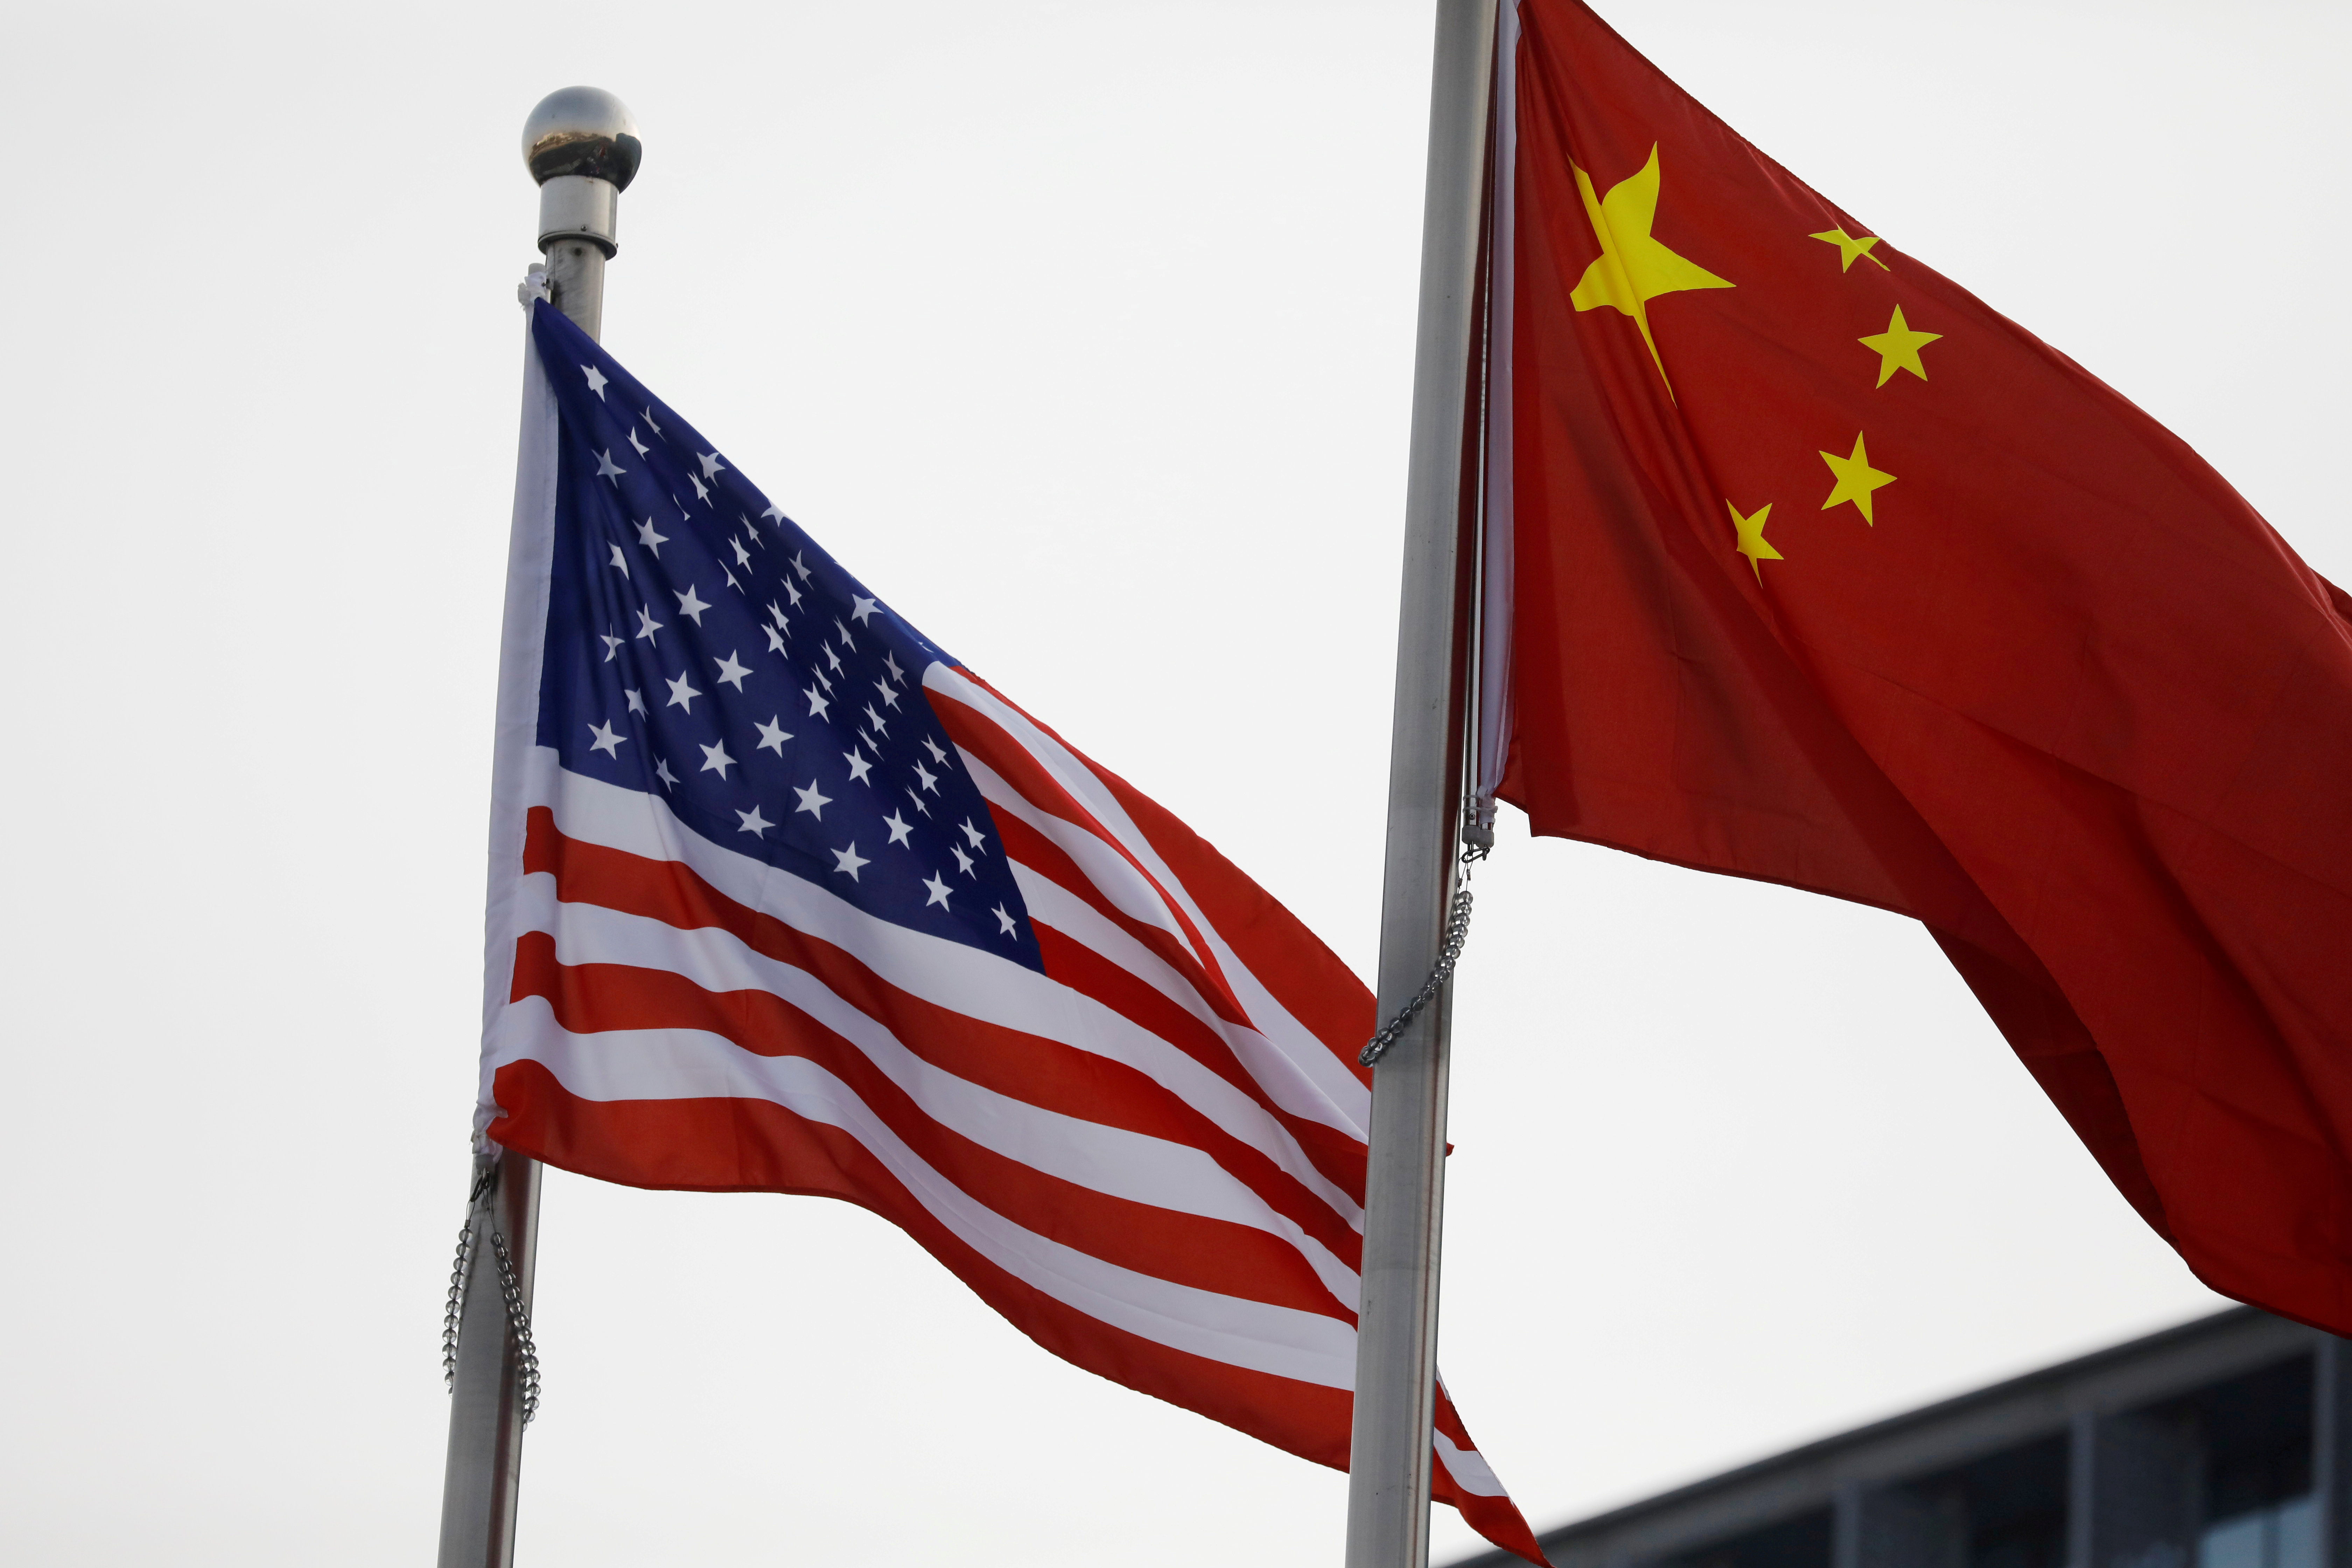 Chinese and U.S. flags flutter outside the building of an American company in Beijing, China January 21, 2021. REUTERS/Tingshu Wang